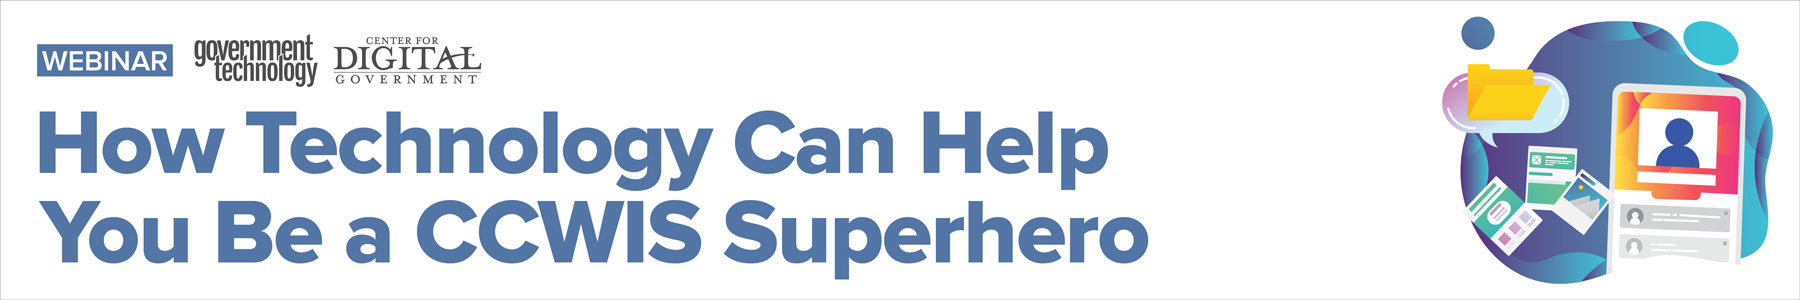 How Technology Can Help You Be a CCWIS Superhero